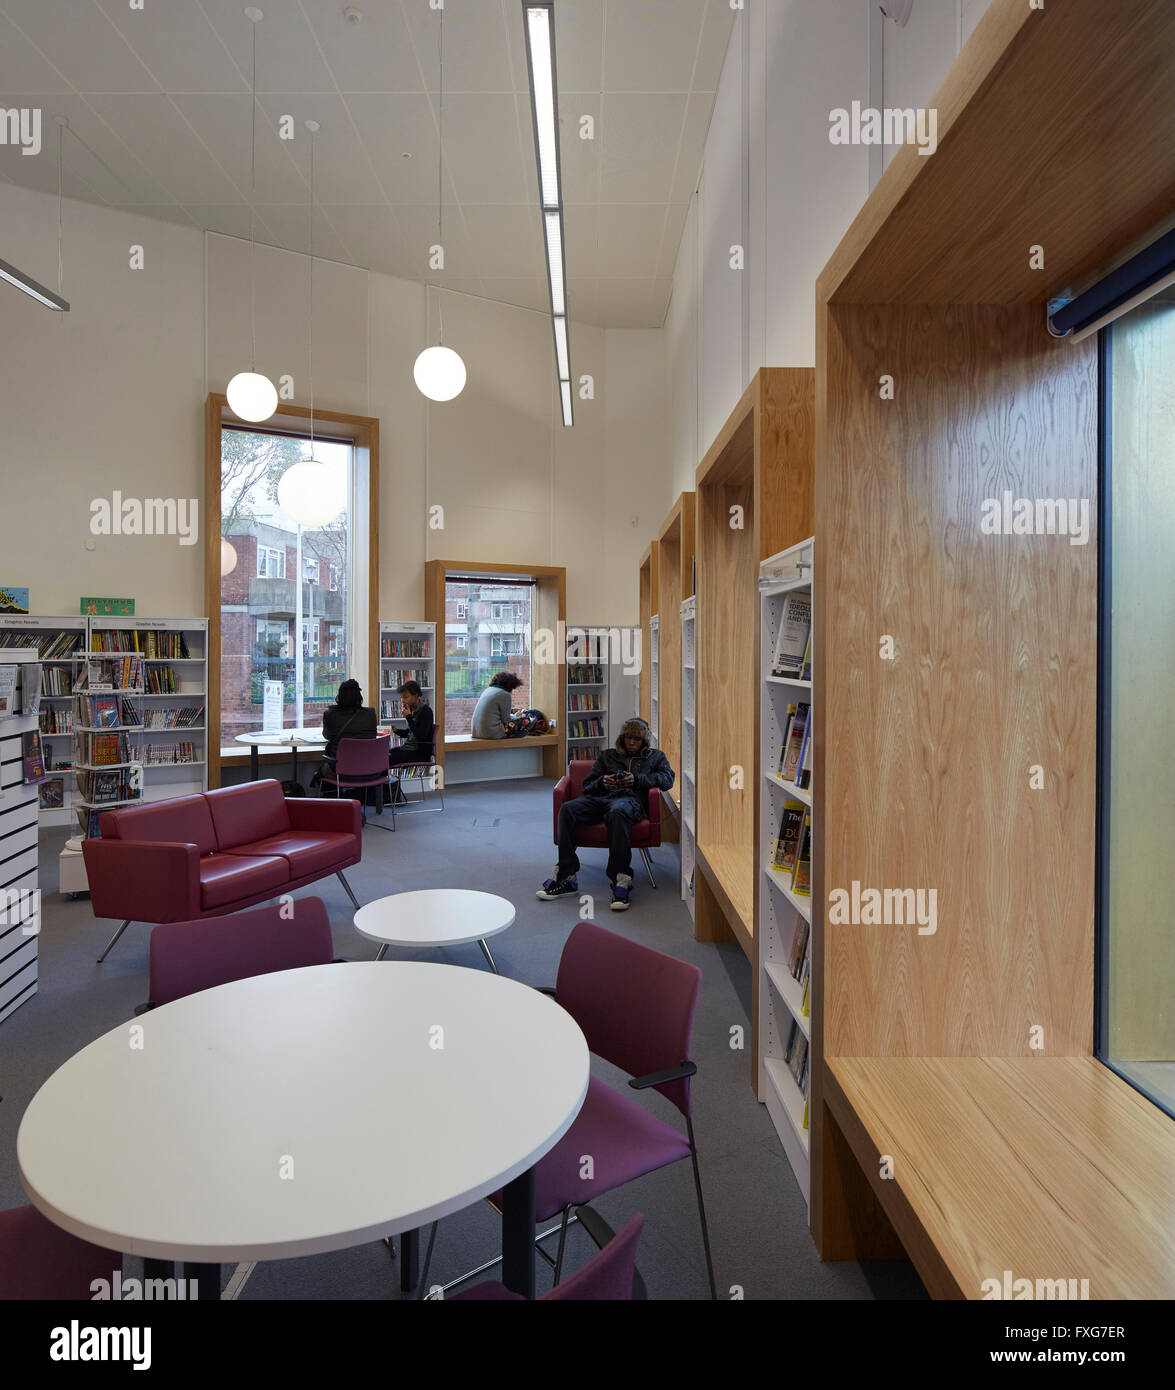 Interior view showing desks and recessed window seats. Camberwell Library, London, United Kingdom. Architect: John - Stock Image